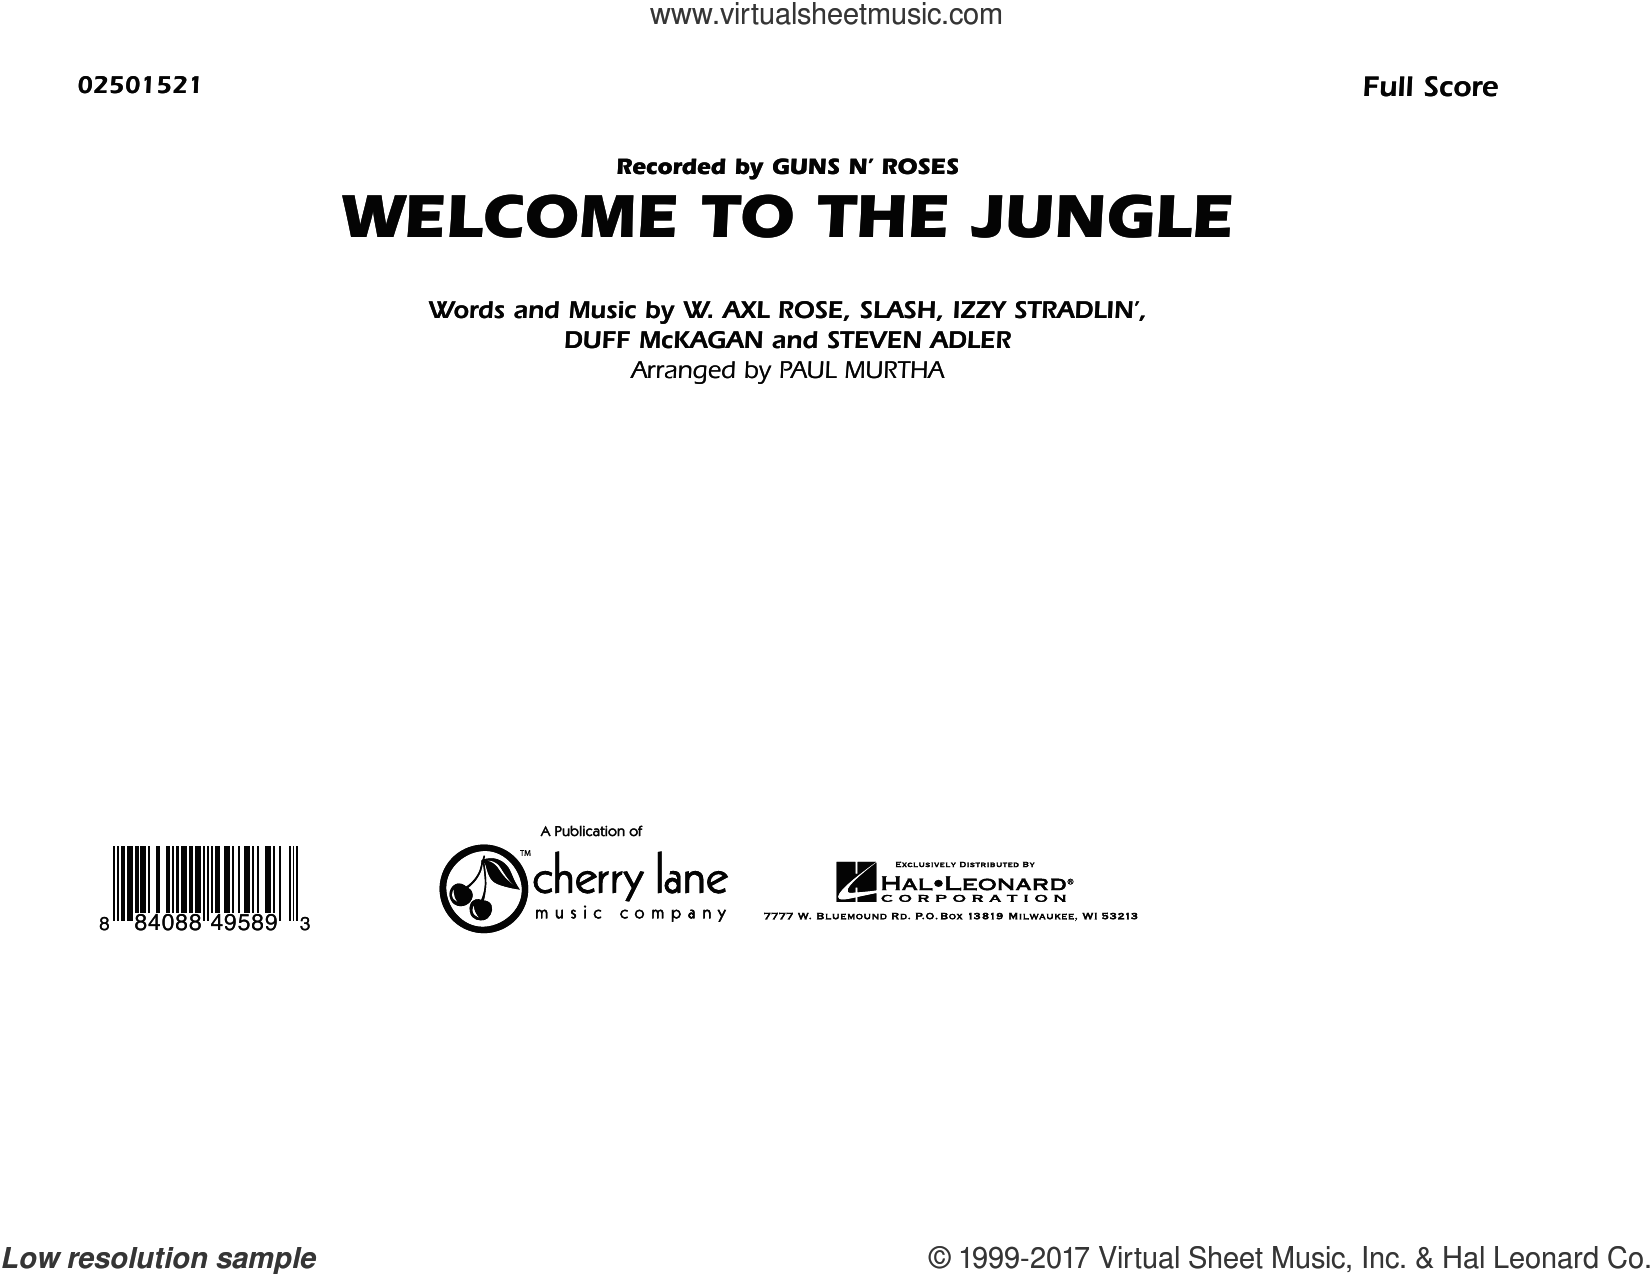 Welcome To The Jungle (COMPLETE) sheet music for marching band by Slash, Axl Rose, Duff McKagan, Steven Adler and Paul Murtha, intermediate skill level